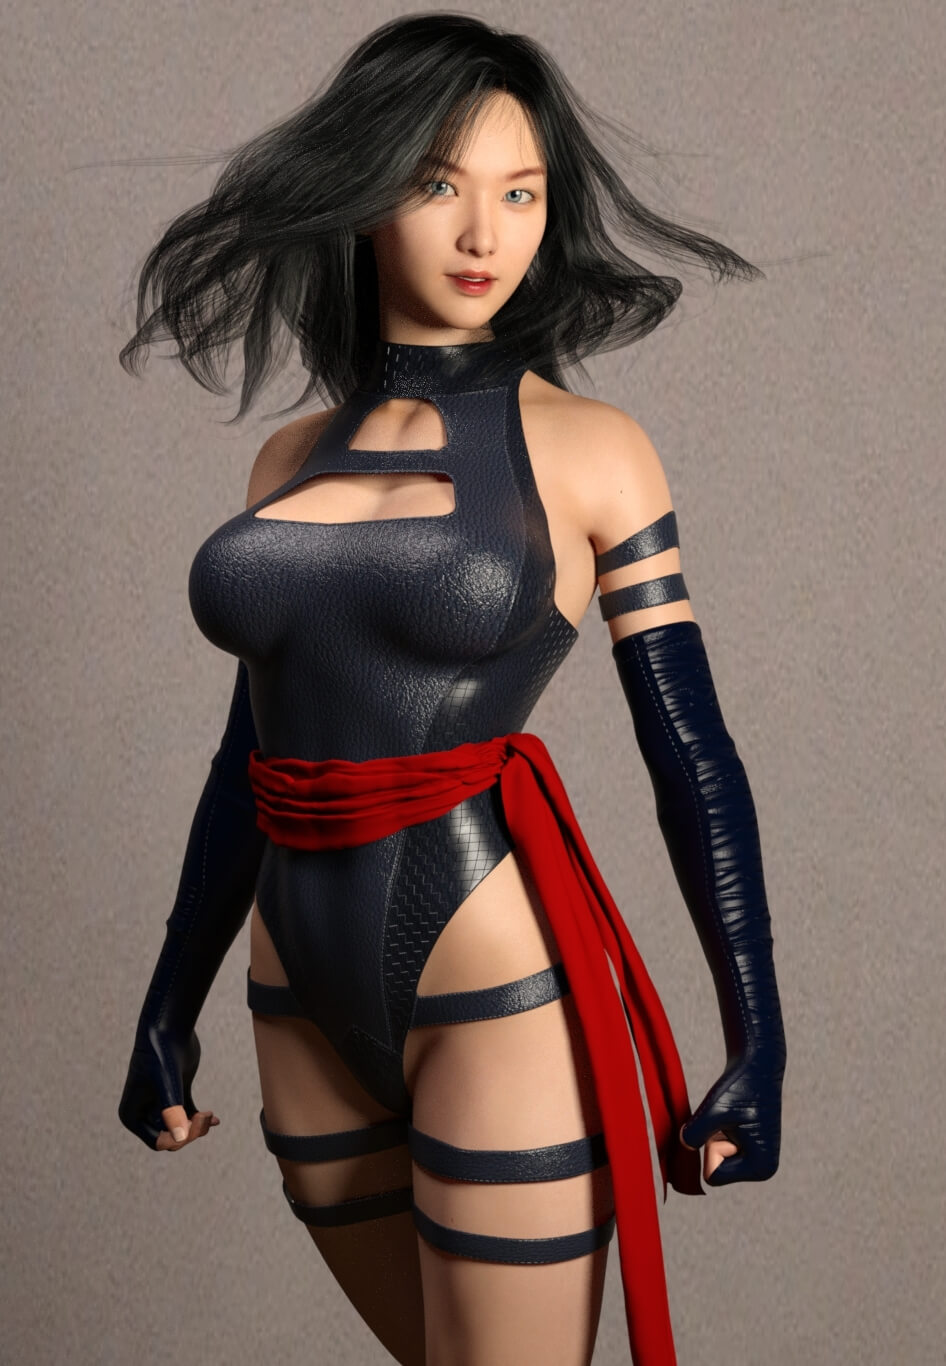 psylocke hot picture (2)